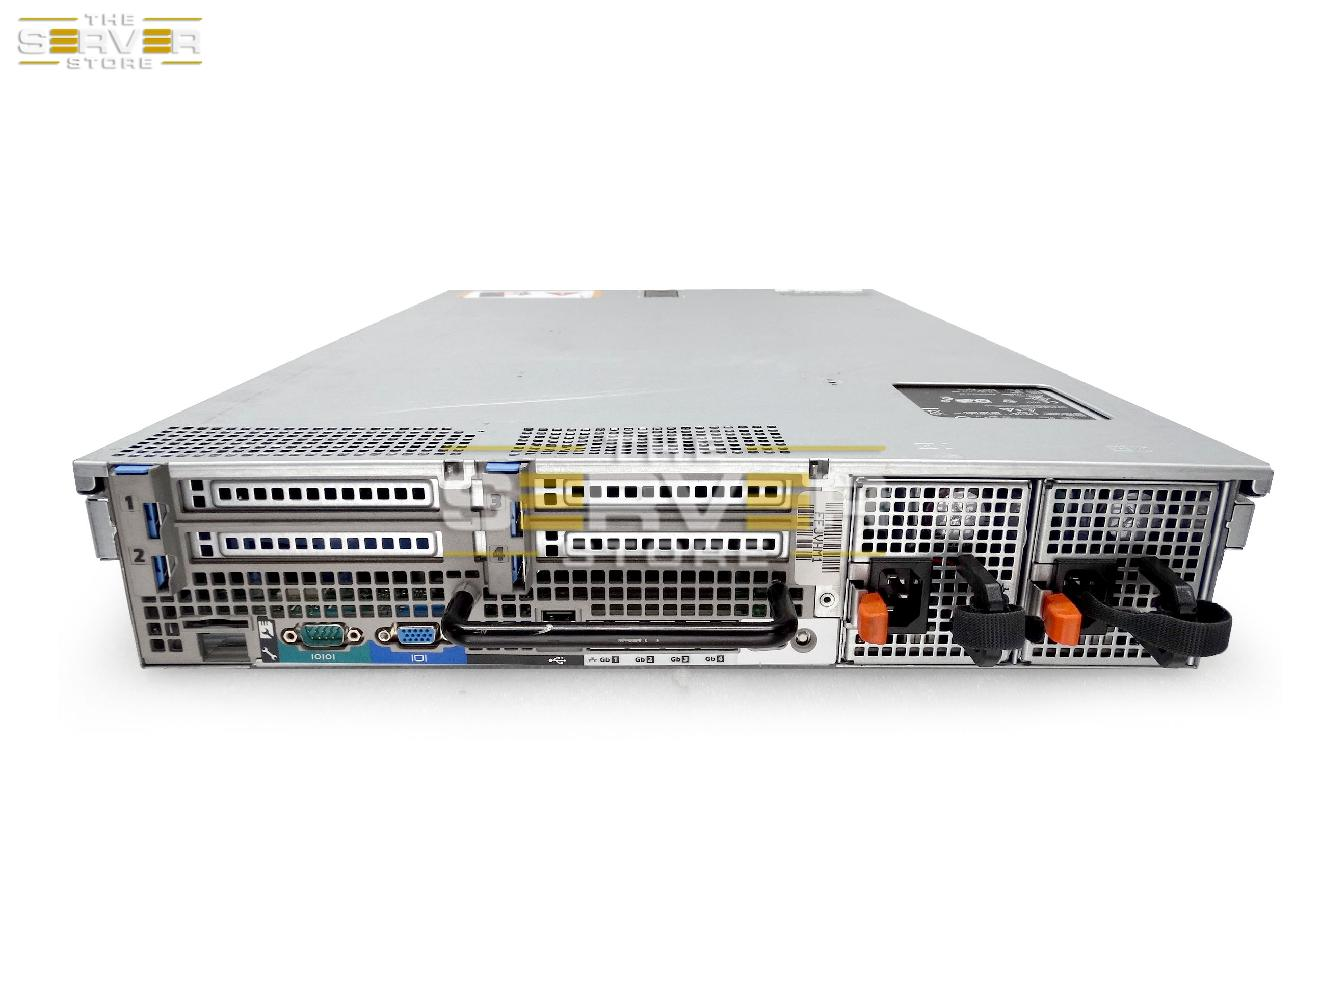 Dell Poweredge R710 Virtualization Server 12 Core 48GB 4x 1TB Perc 6i Sale!